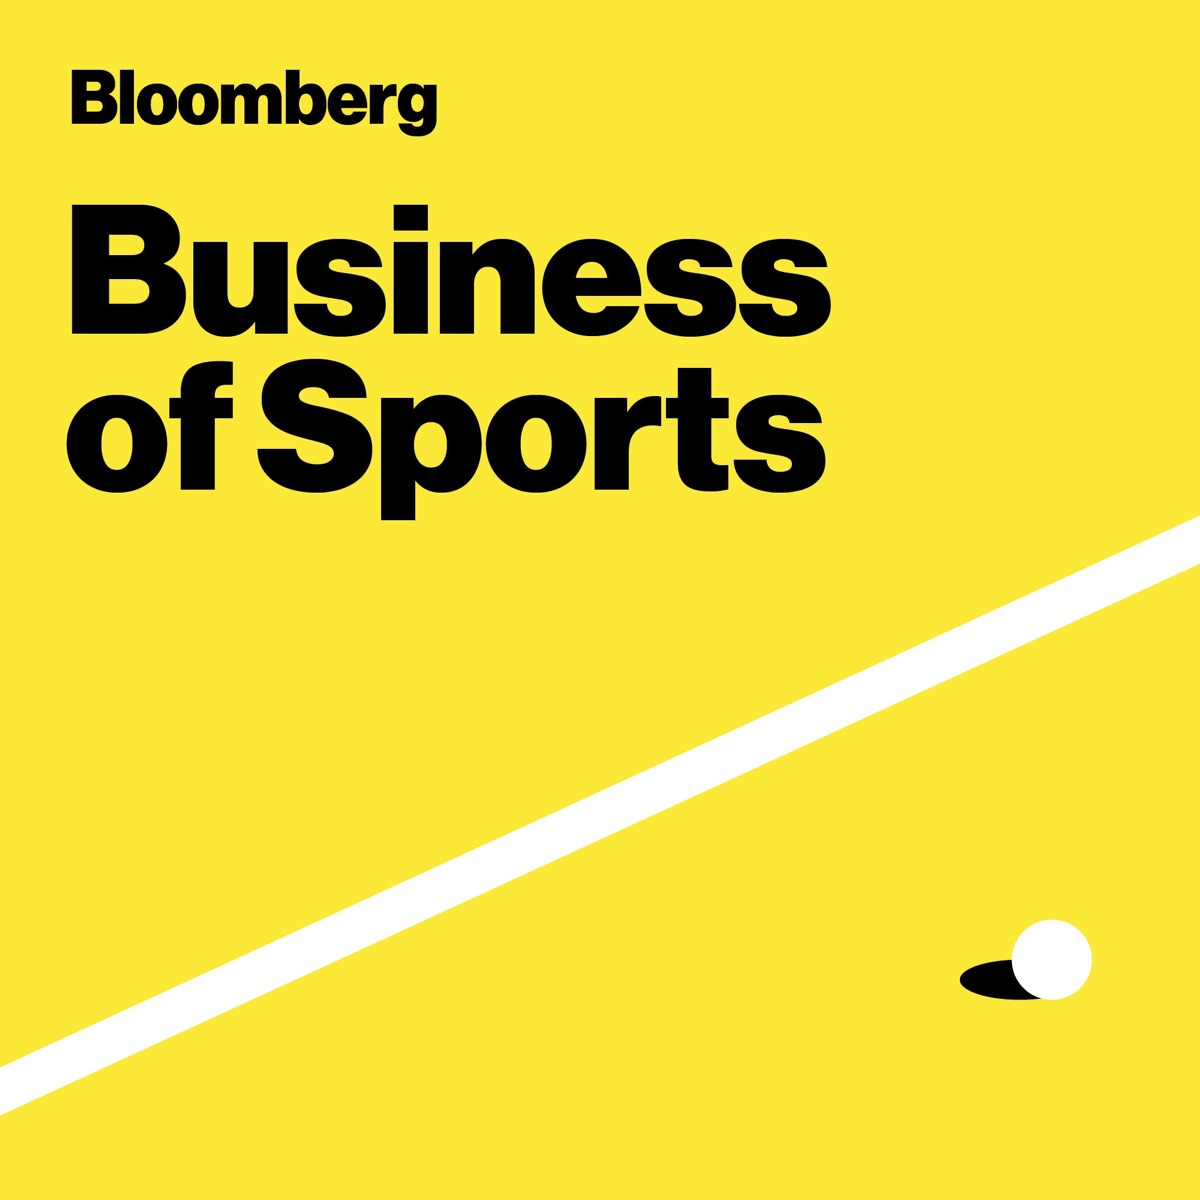 Tokyo Opening Ceremony, NBA Ratings, NFL Fines